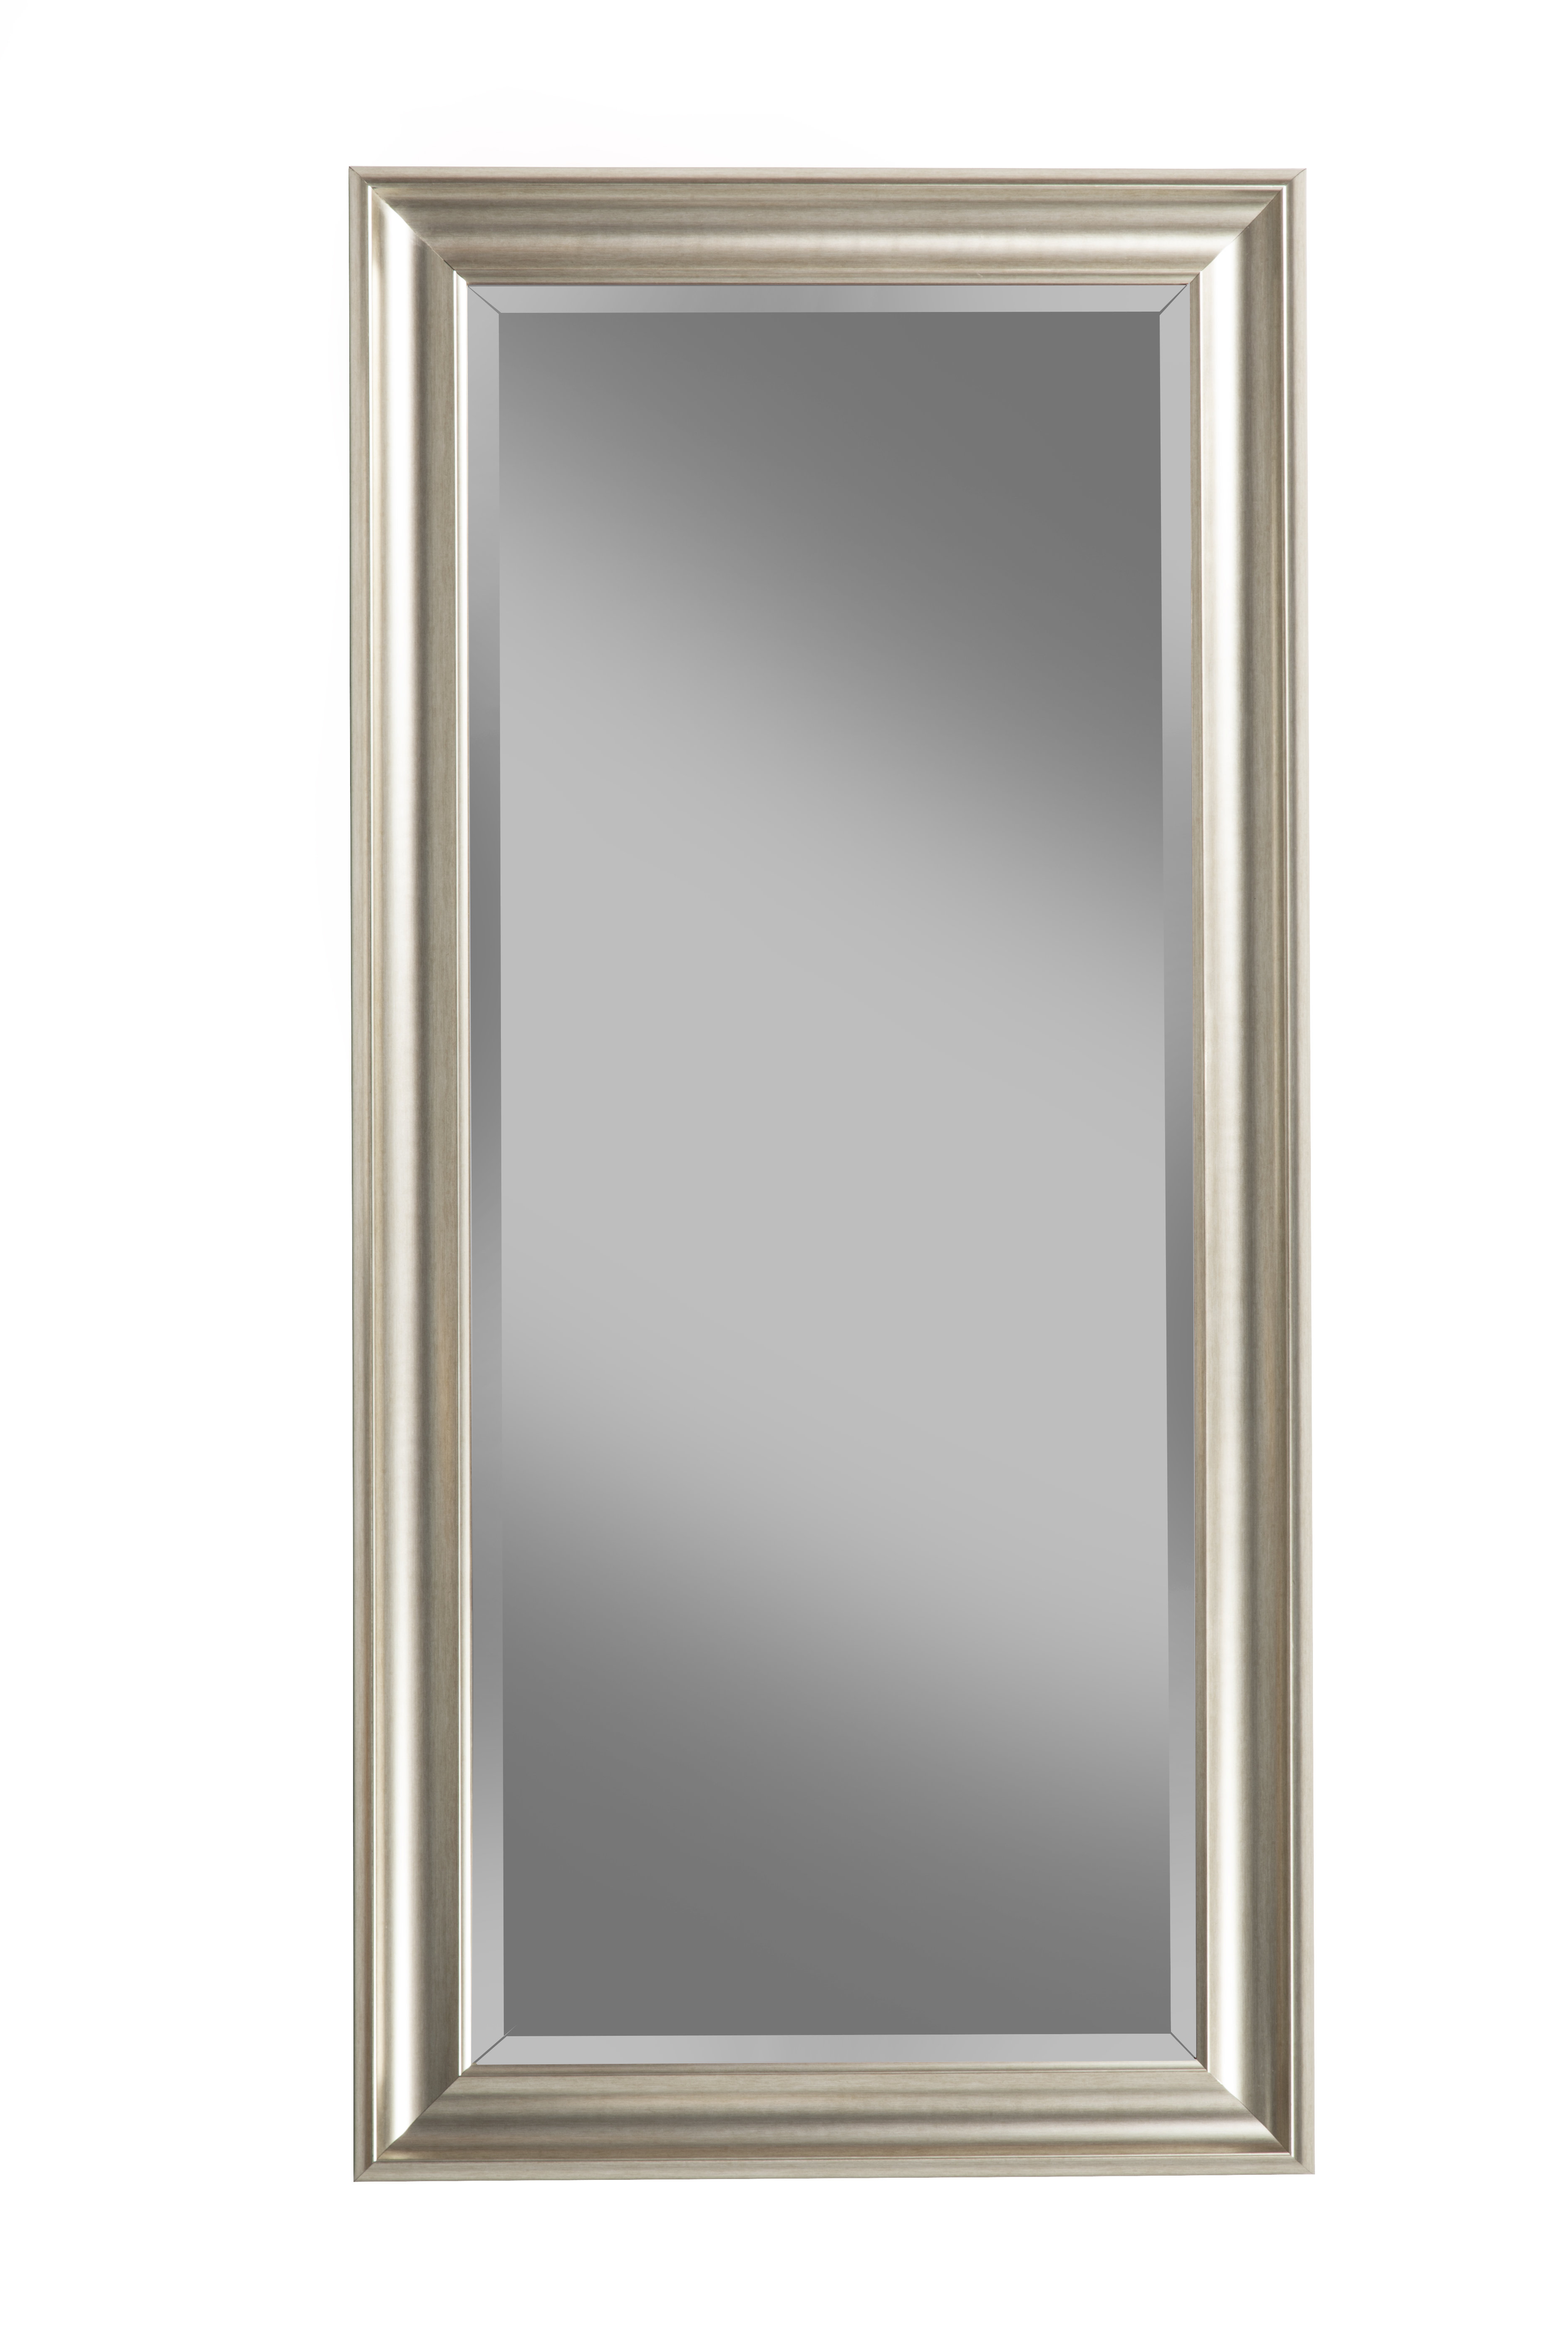 Willa Arlo Interiors Northcutt Full Length Mirror | Birch Lane With Northcutt Accent Mirrors (View 7 of 30)